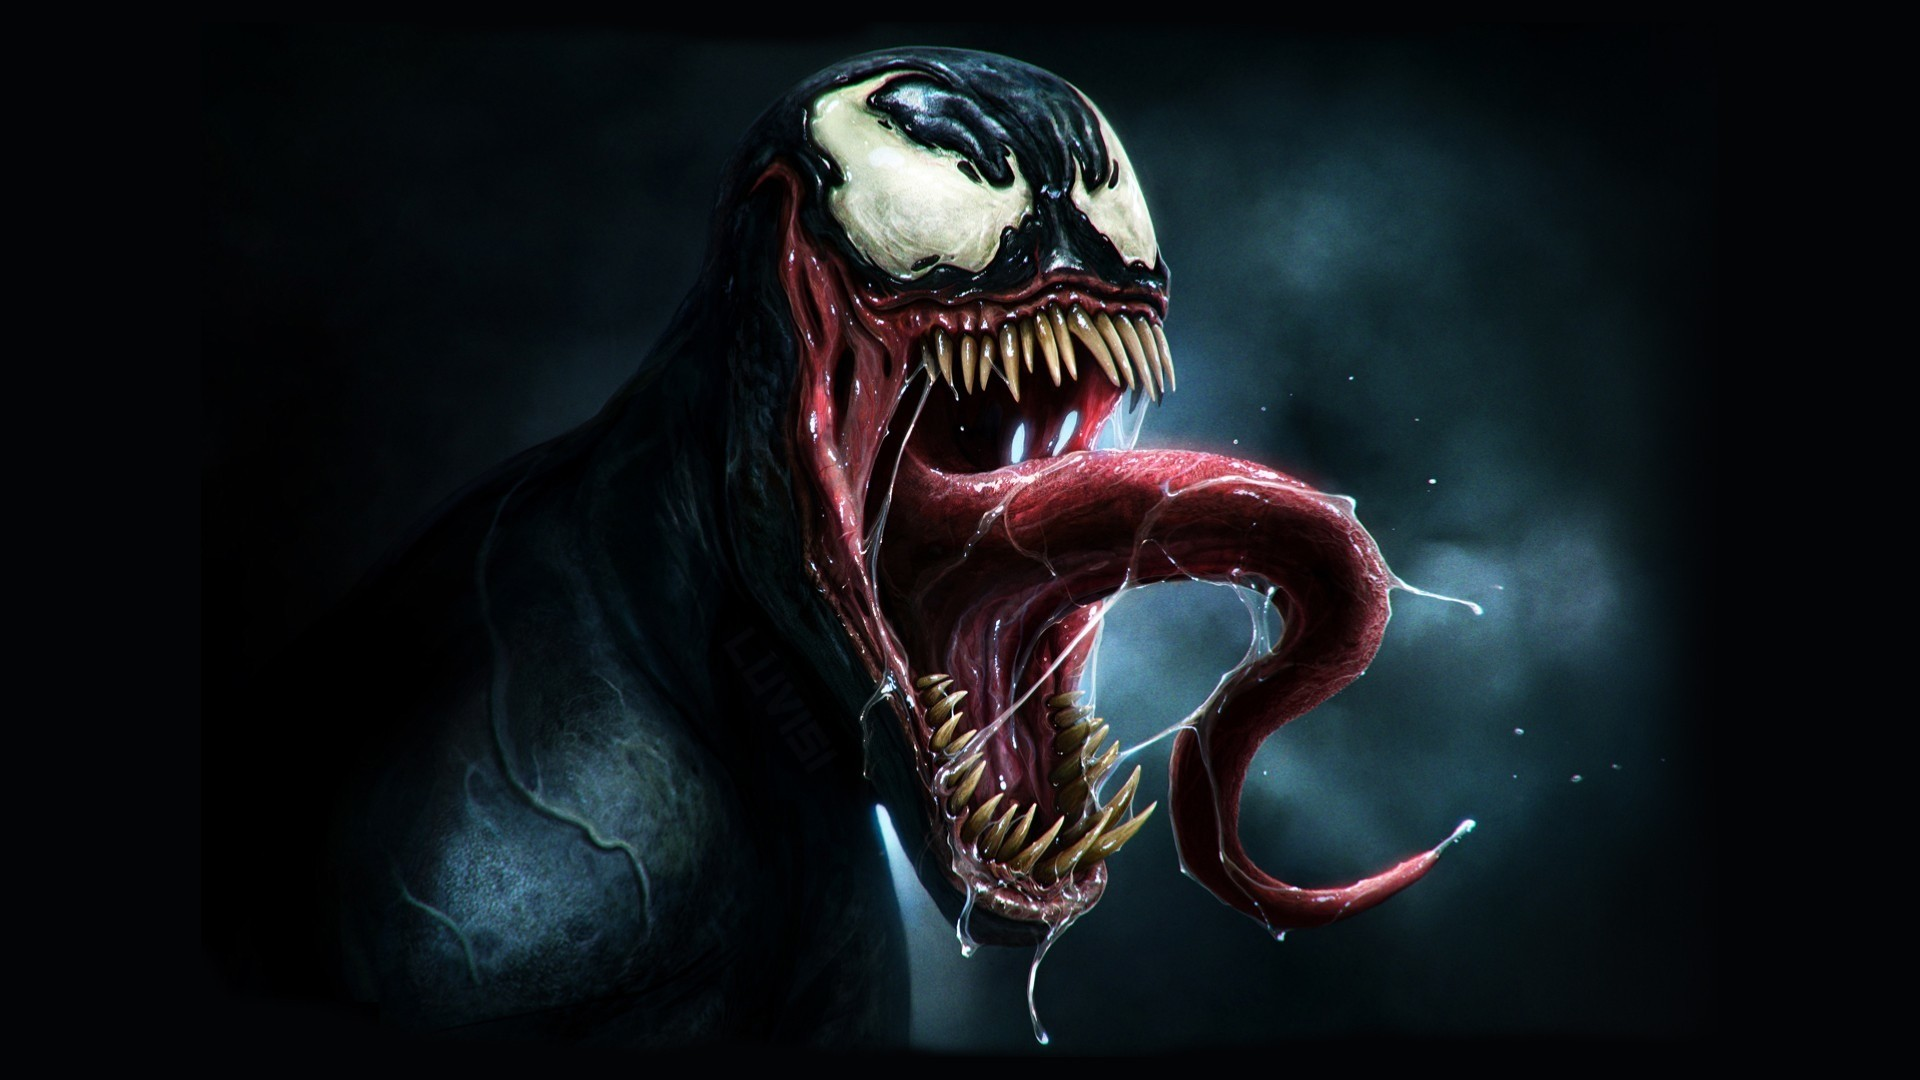 Anti Venom Wallpapers High Quality Resolution with HD Wallpaper Resolution